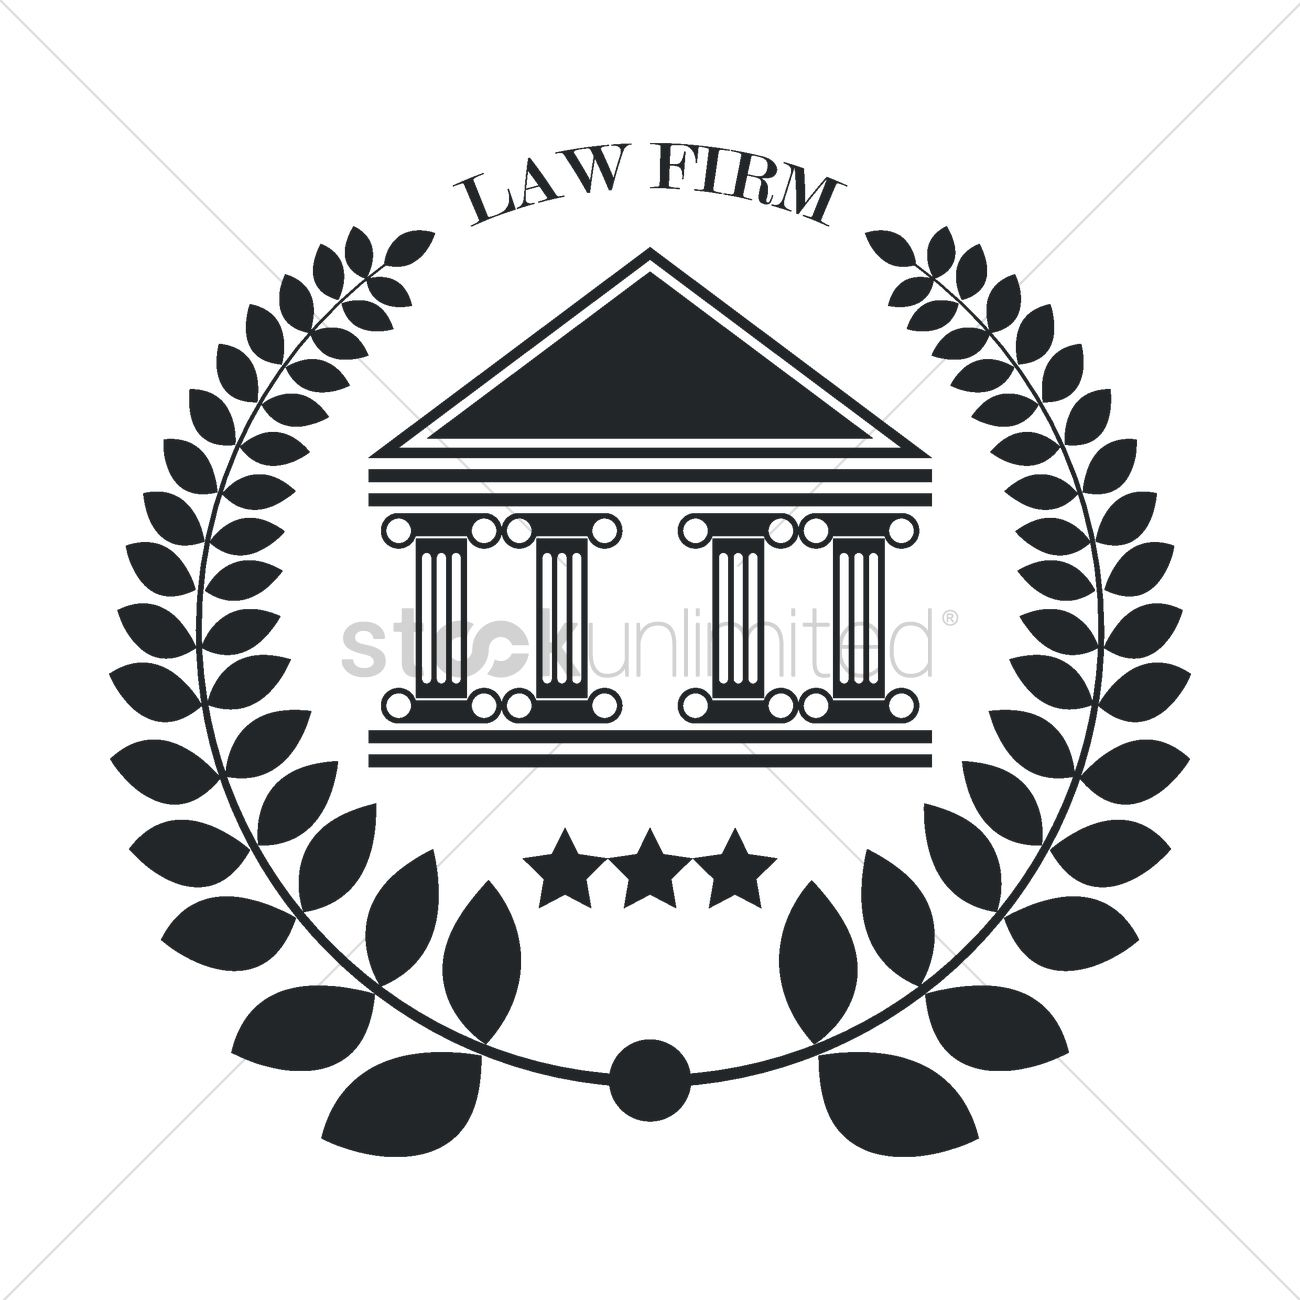 Law firm logo element Vector Image - 1982950 | StockUnlimited